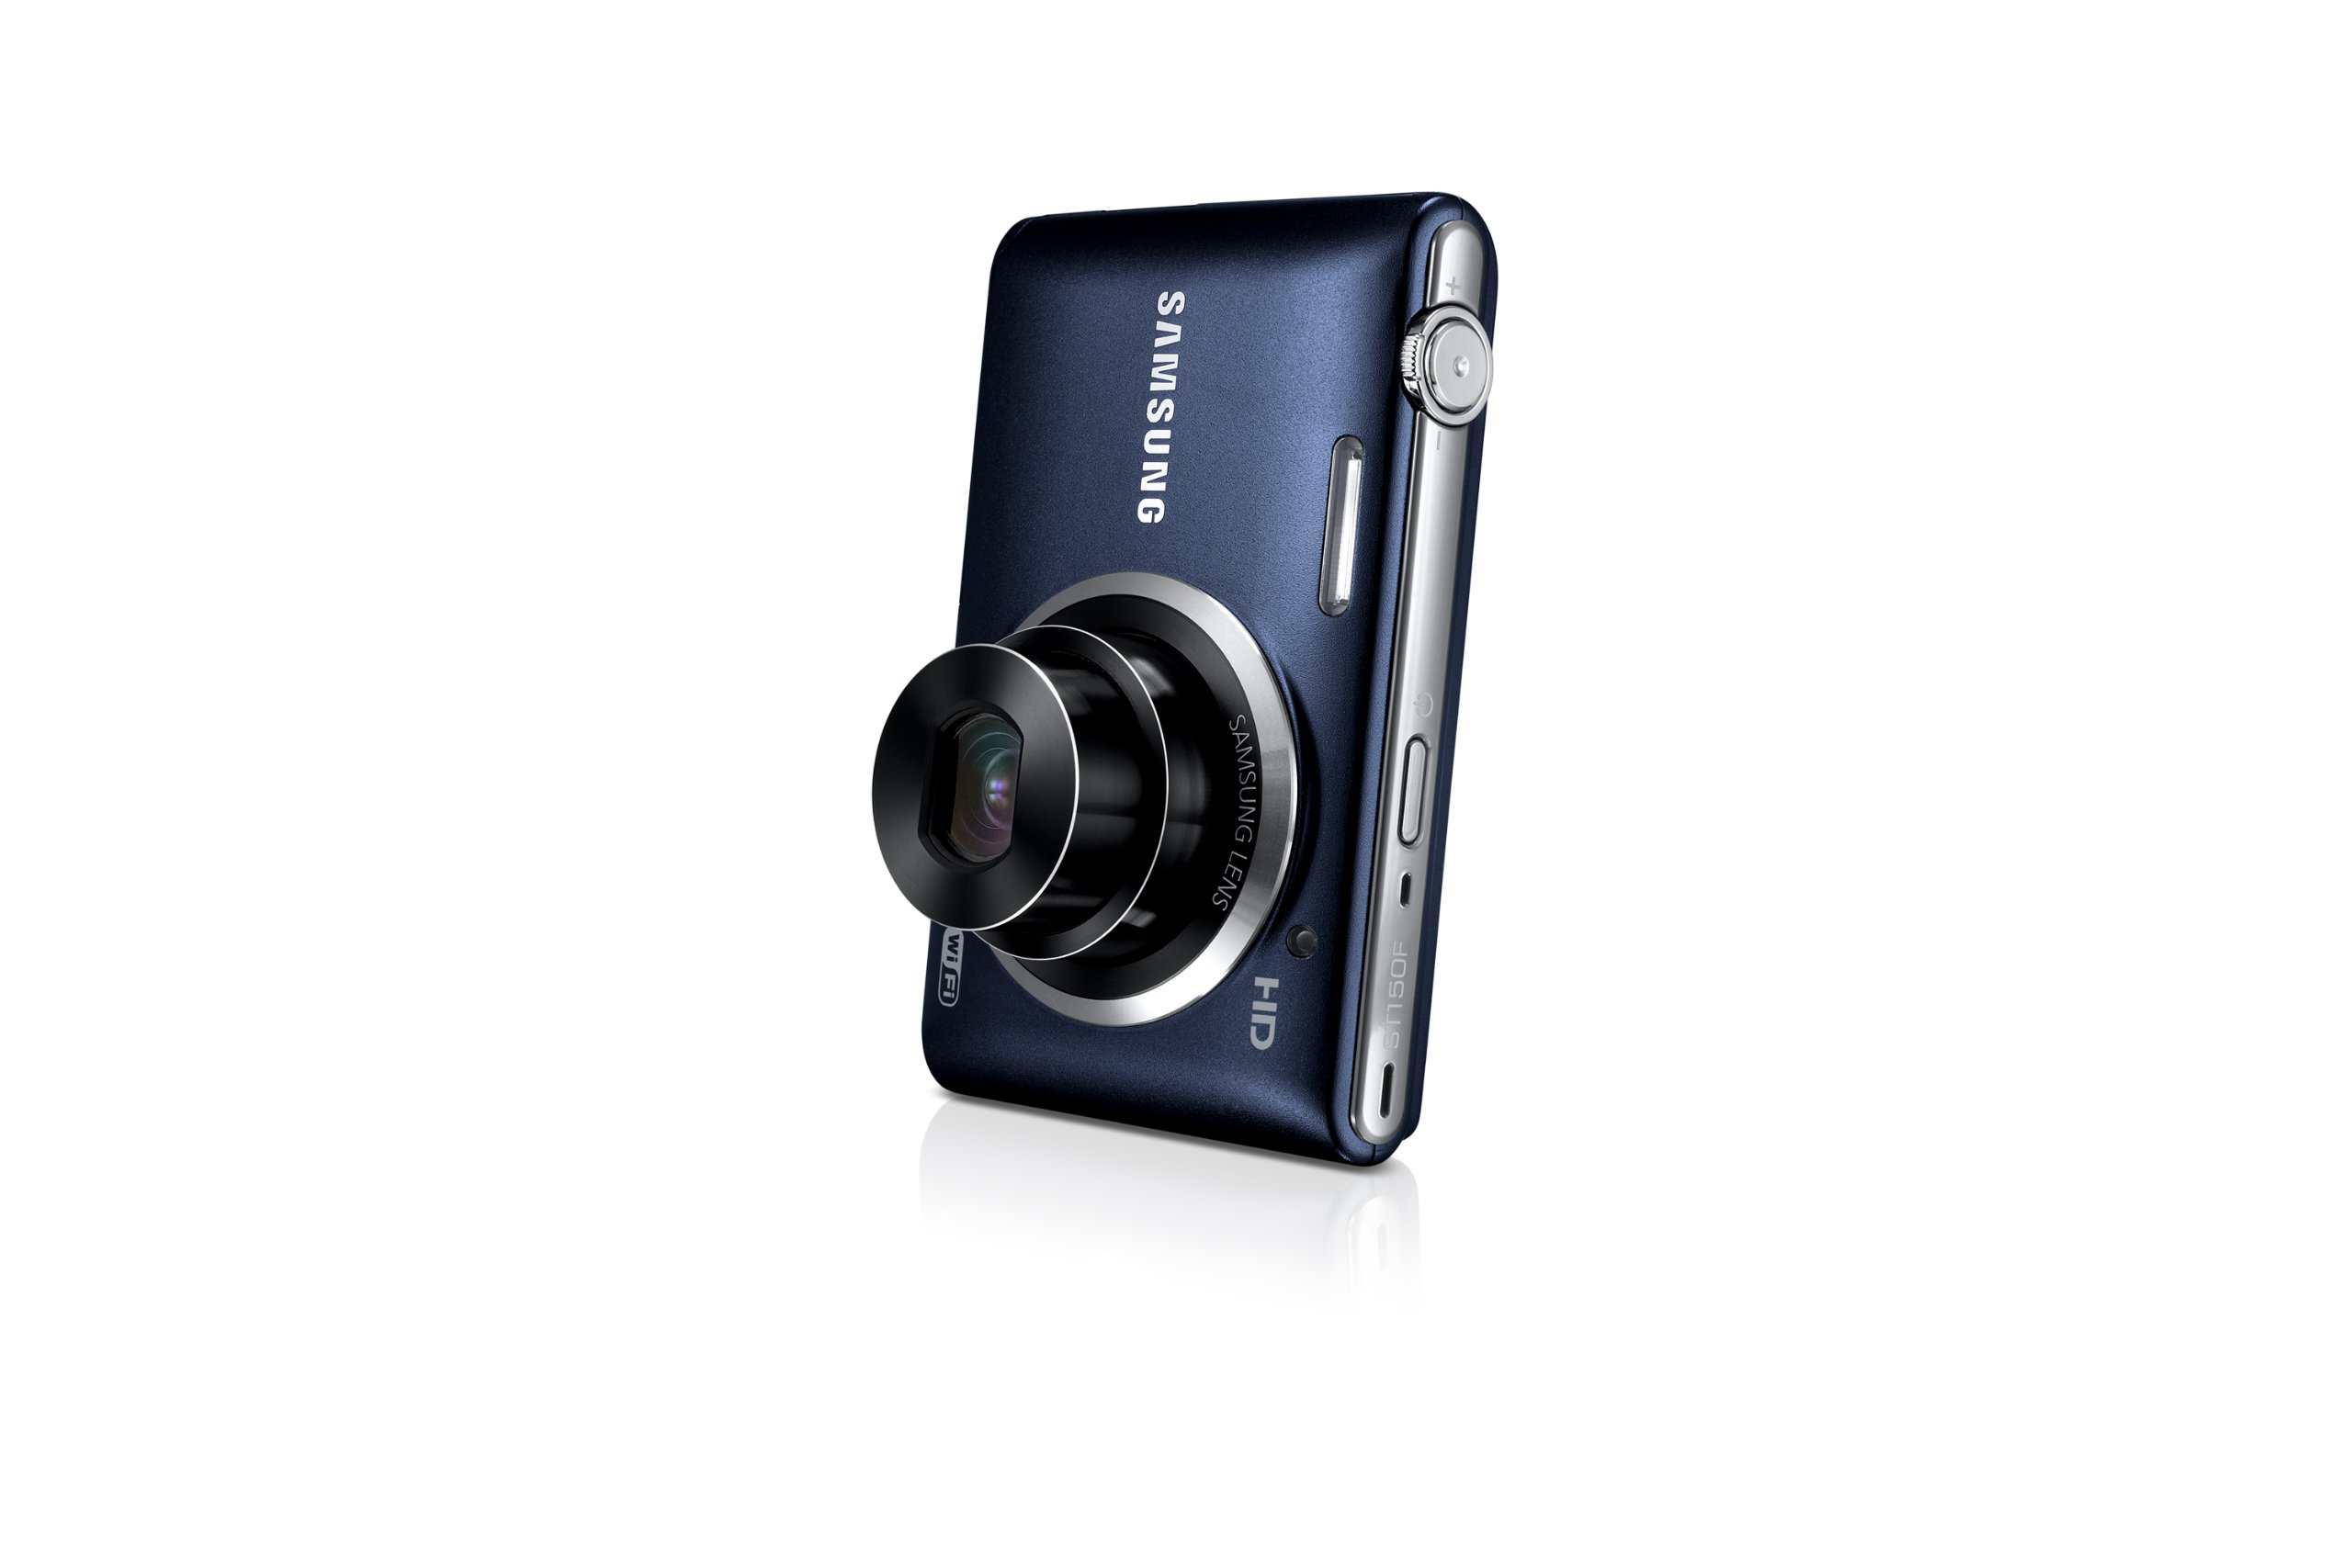 Samsung ST150F 16.2MP Smart WiFi Digital Camera with 5x Optical Zoom and 3.0'' LCD Screen (Black) by Samsung (Image #8)